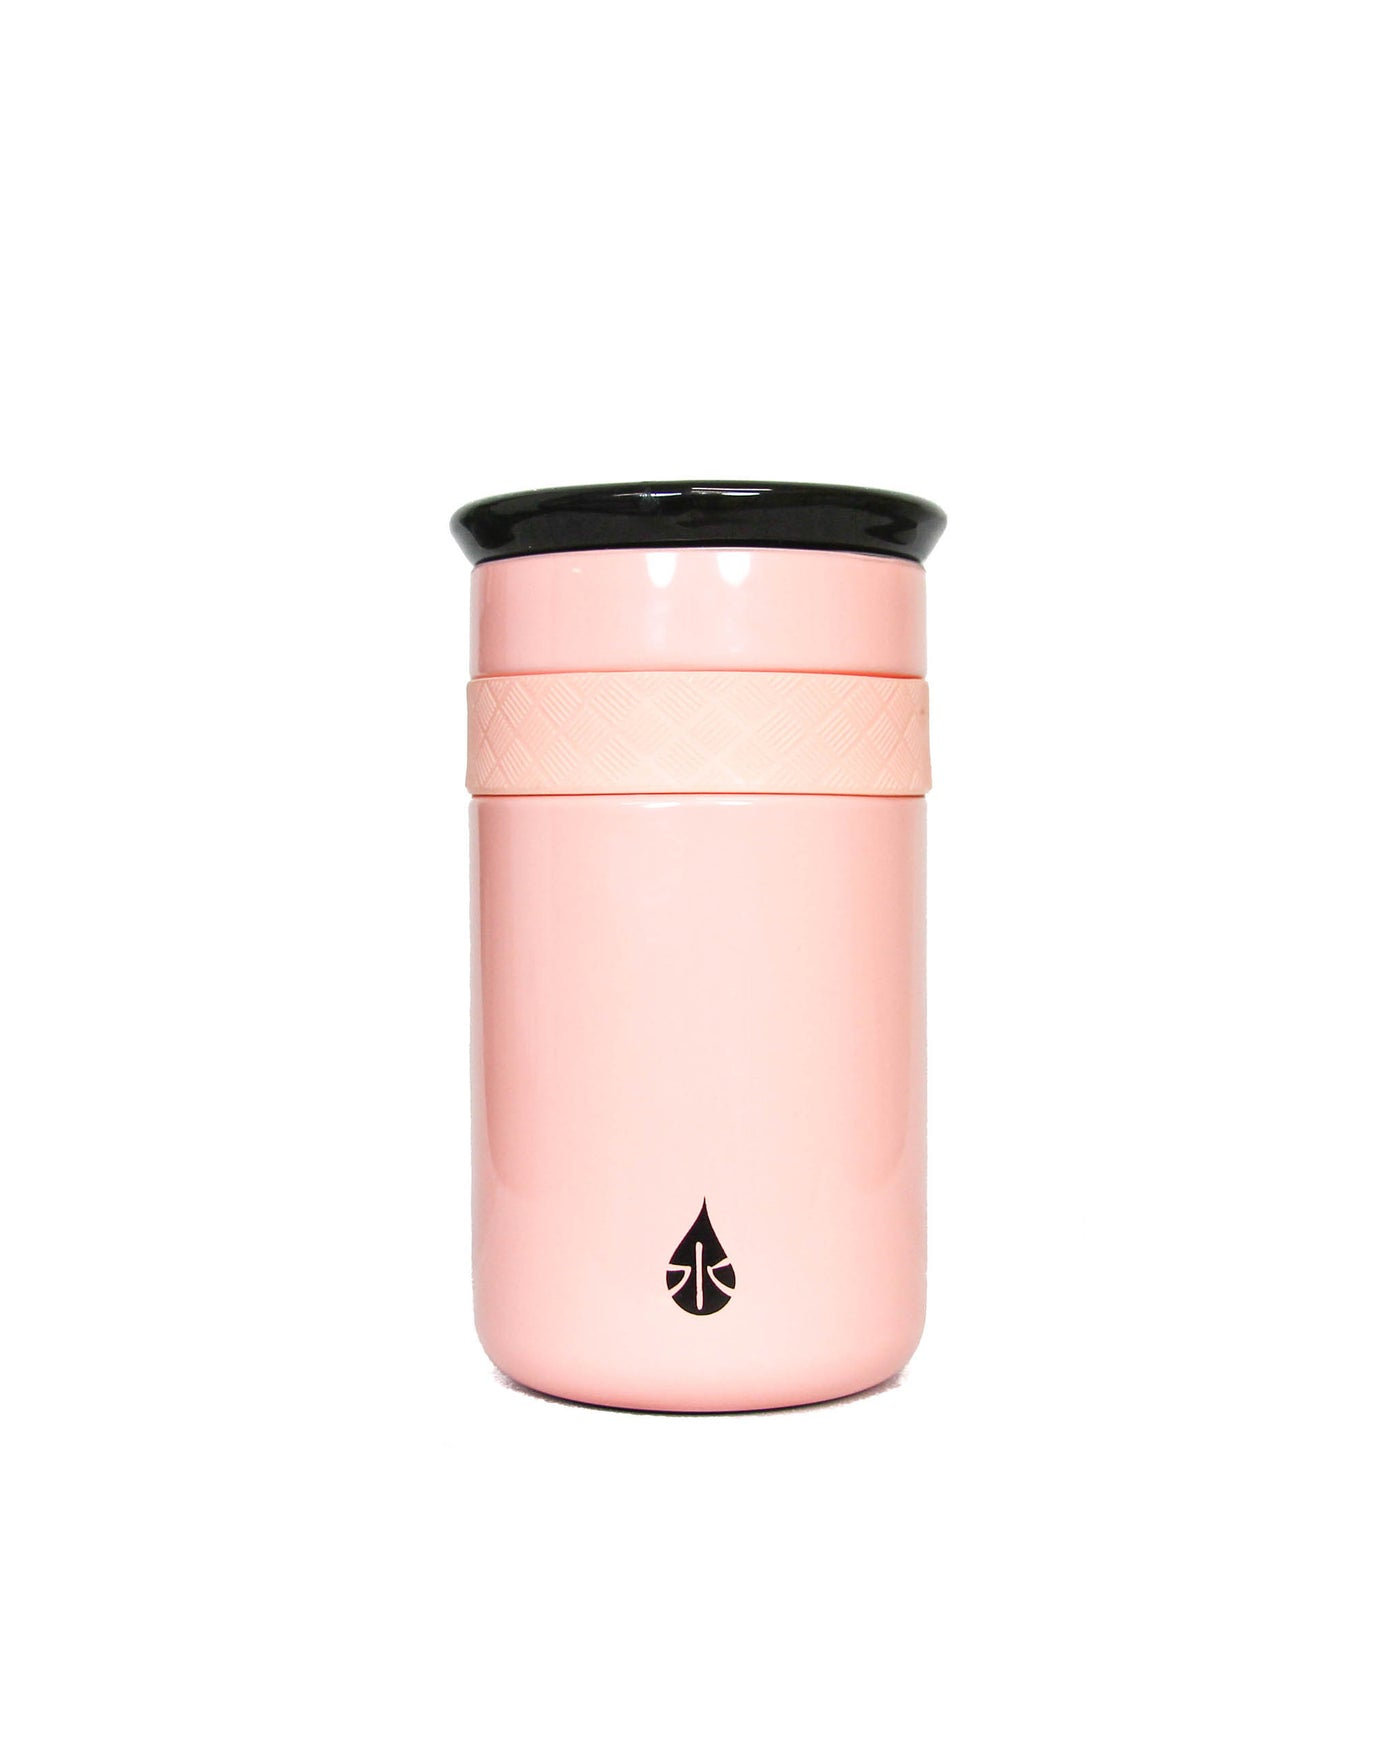 Elemental 12 oz Tumbler - Gloss Rose Pink - Elemental Gifts